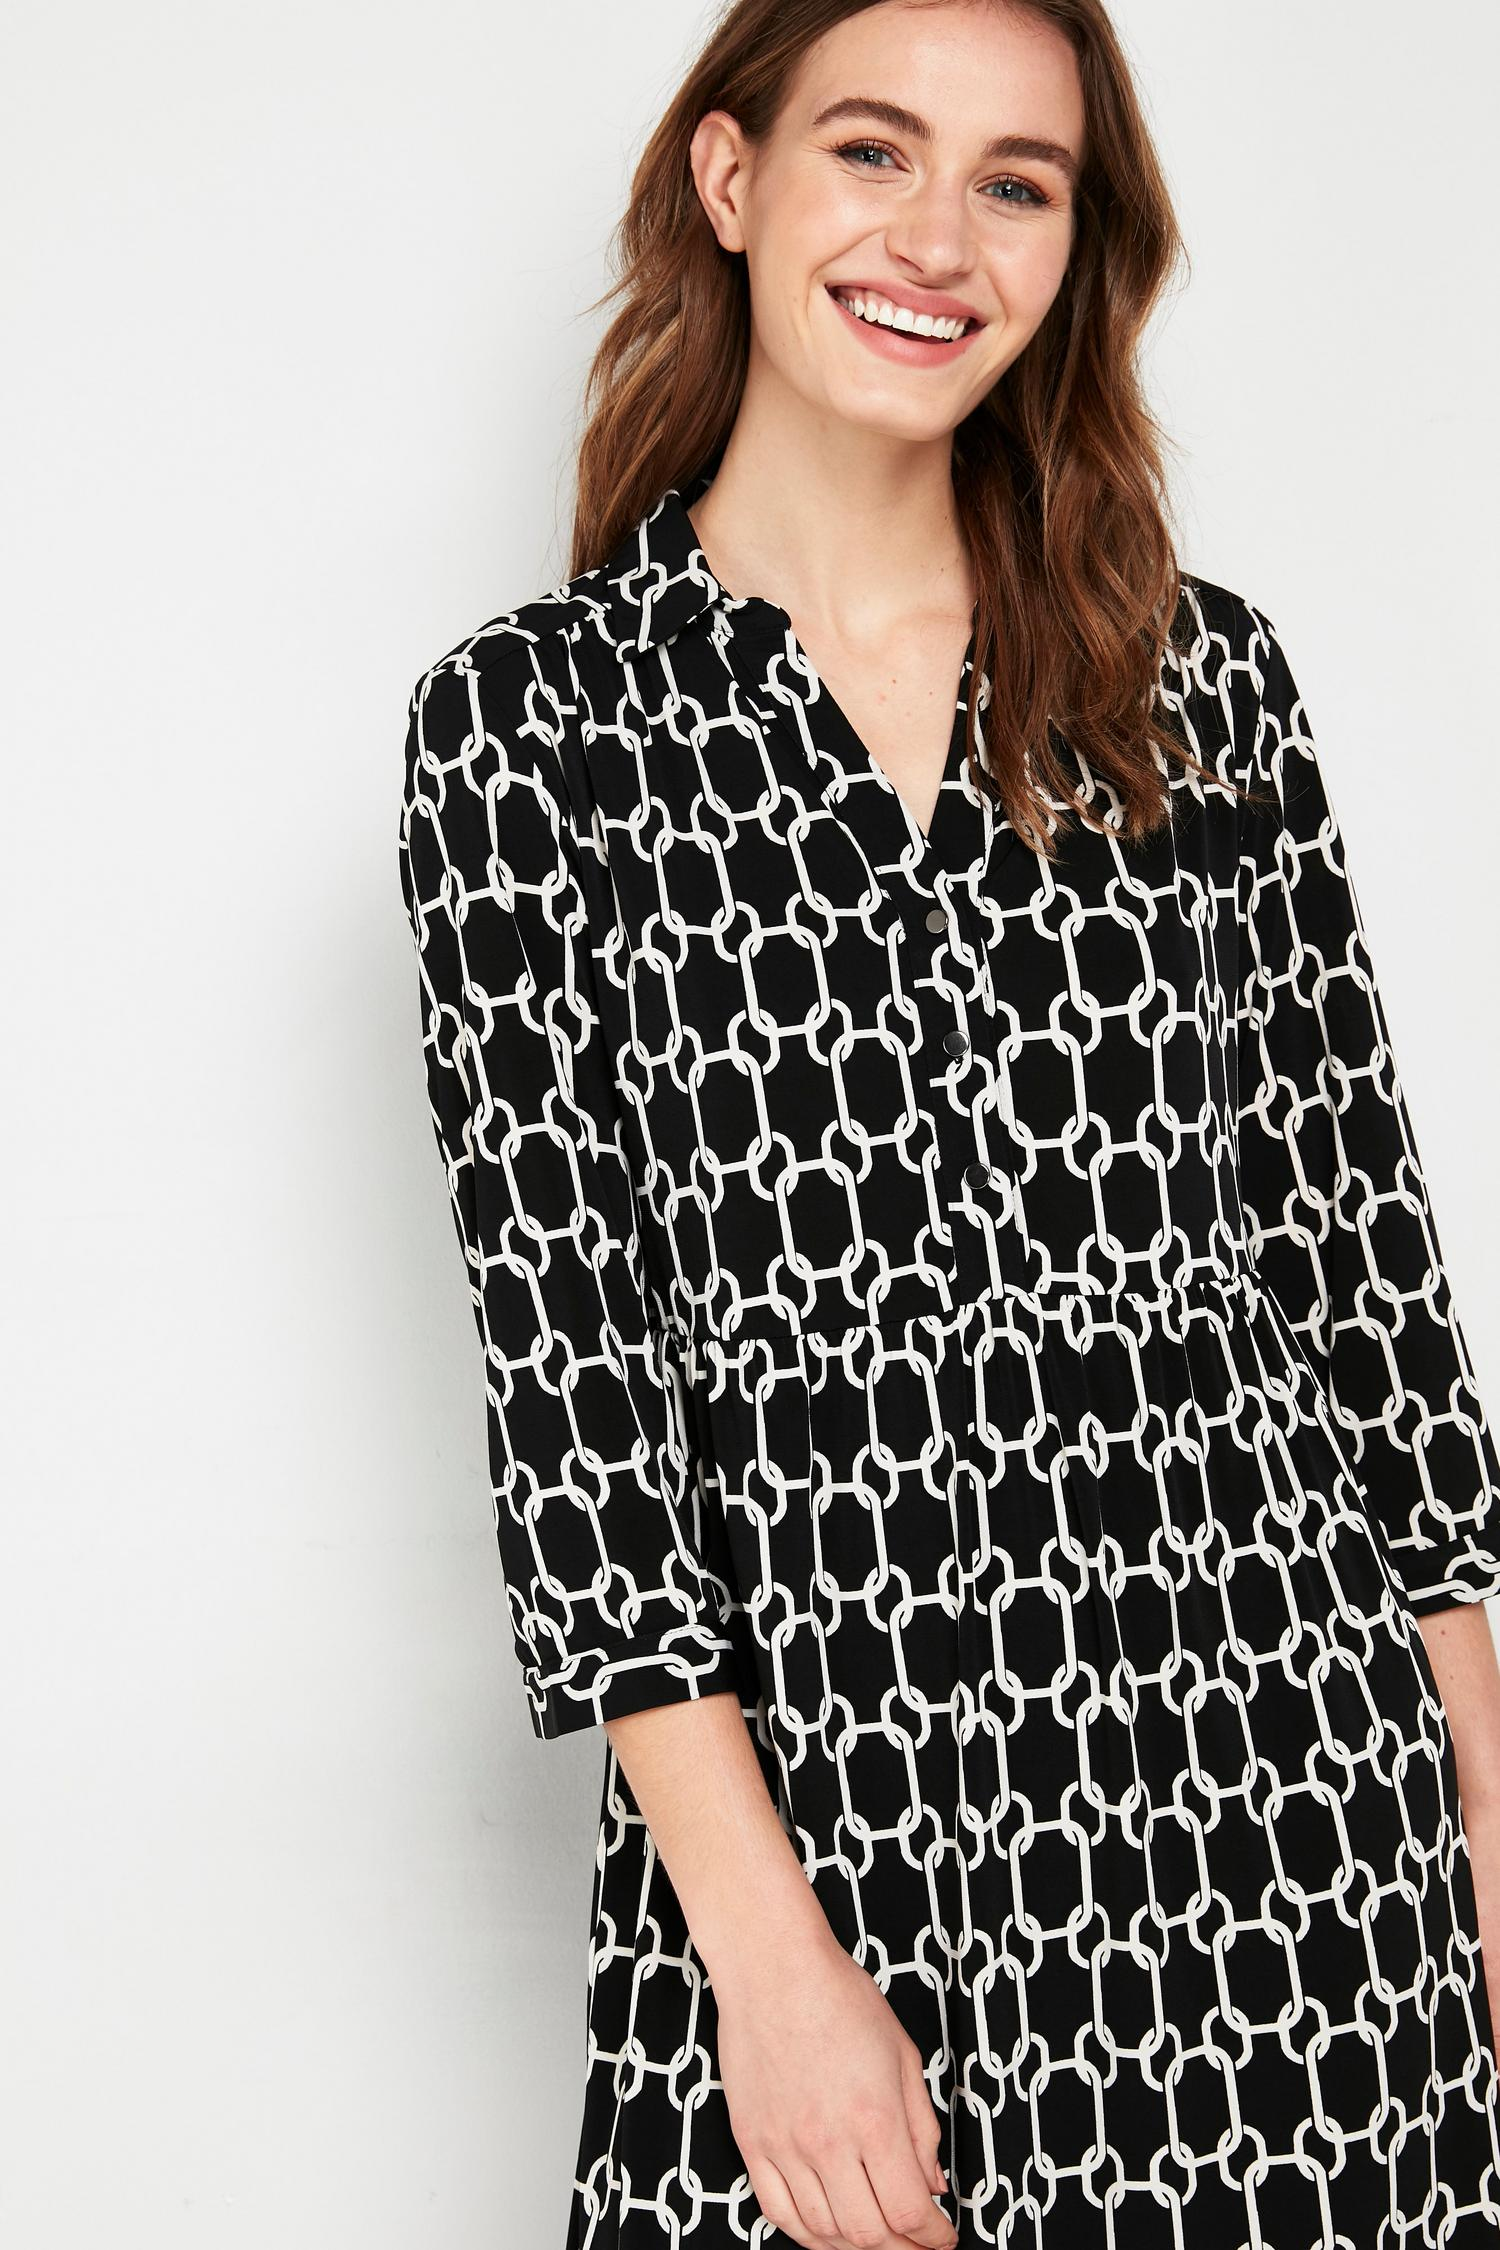 585 Monochrome Chain Print Shirt Dress image number 3